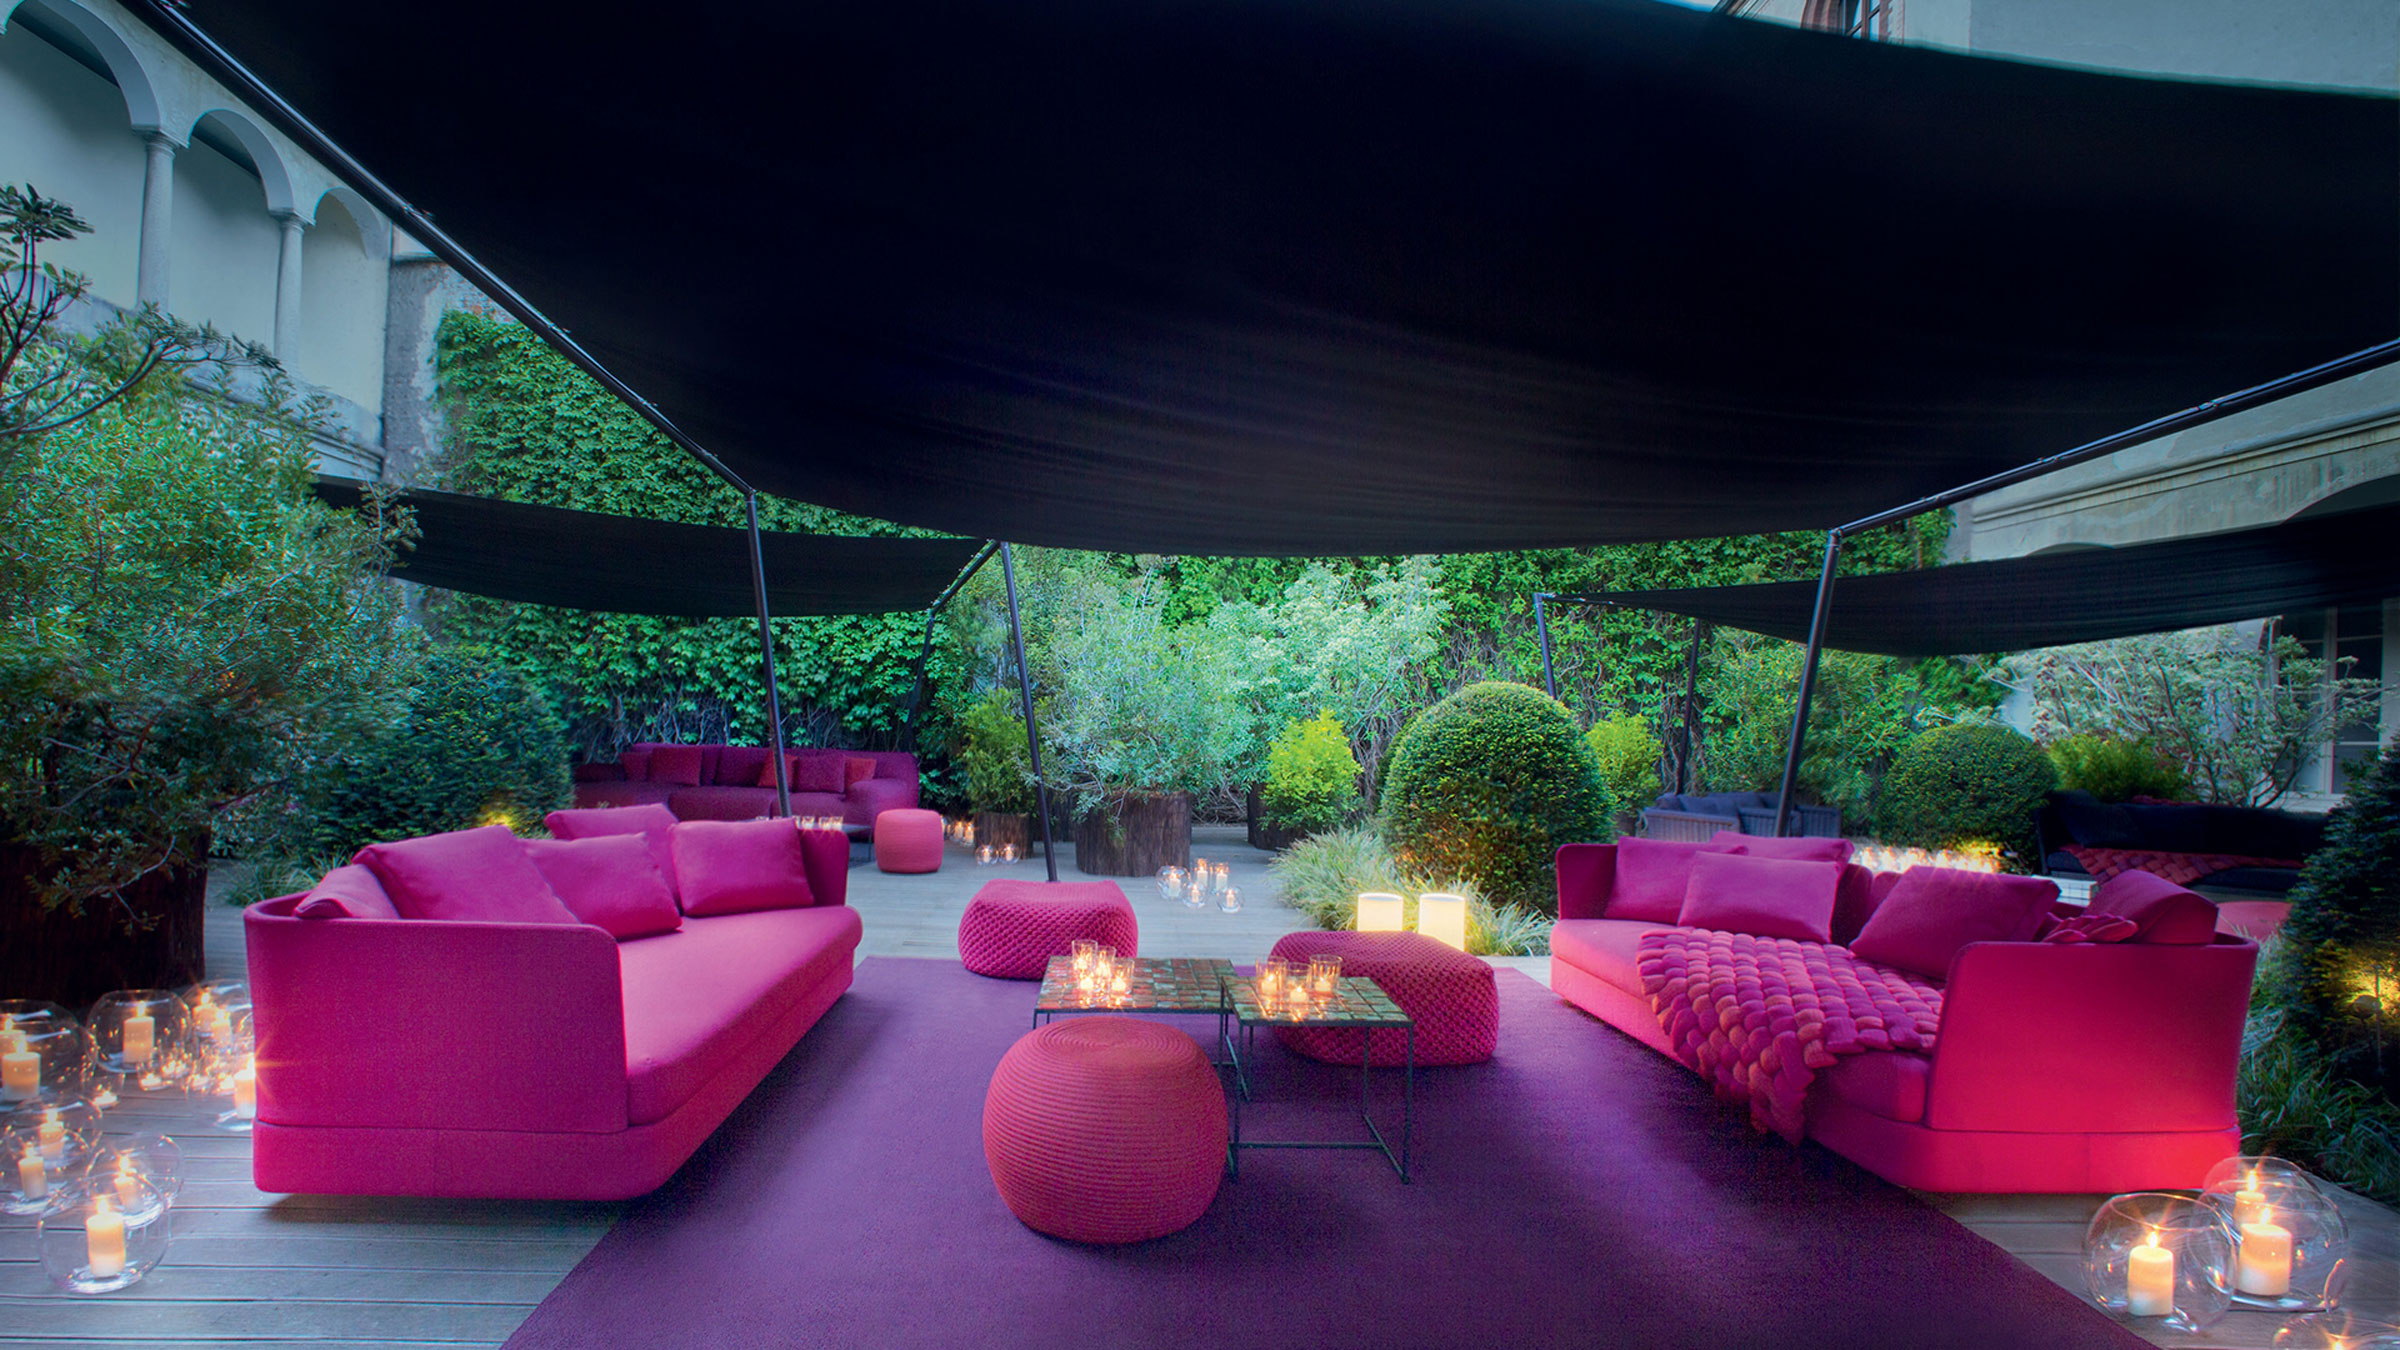 hauser-design-paola-lenti-frame-lounge-in-pink